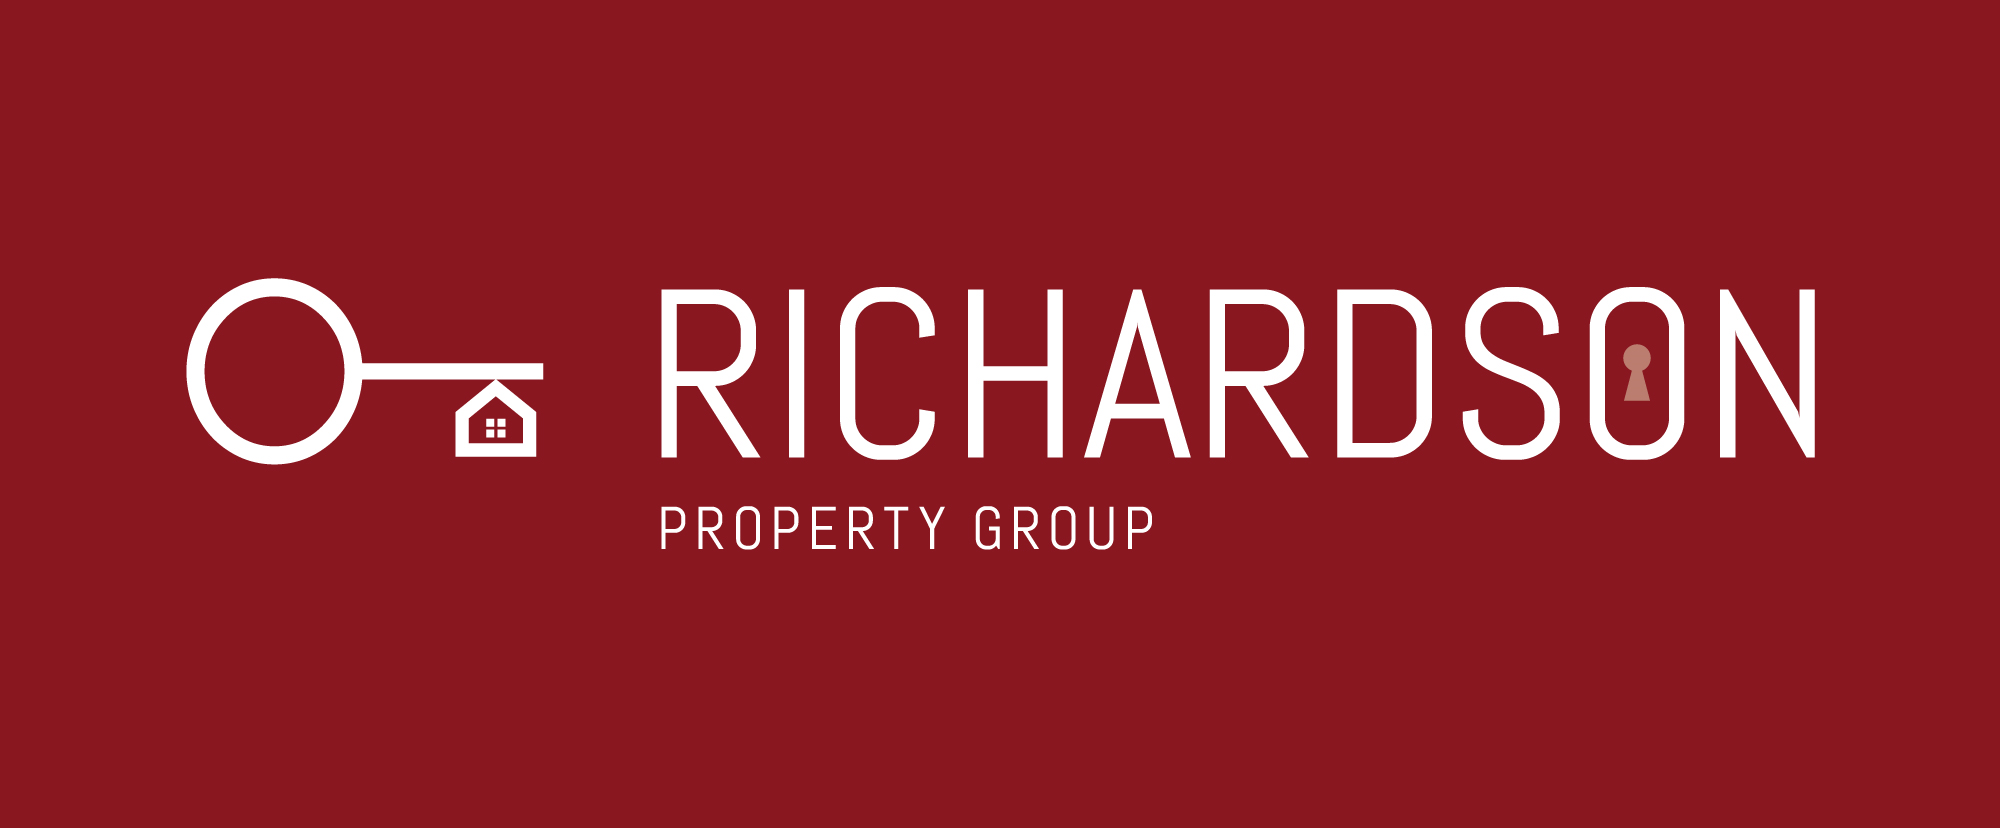 Richardson Property Group, Werribee, 3030